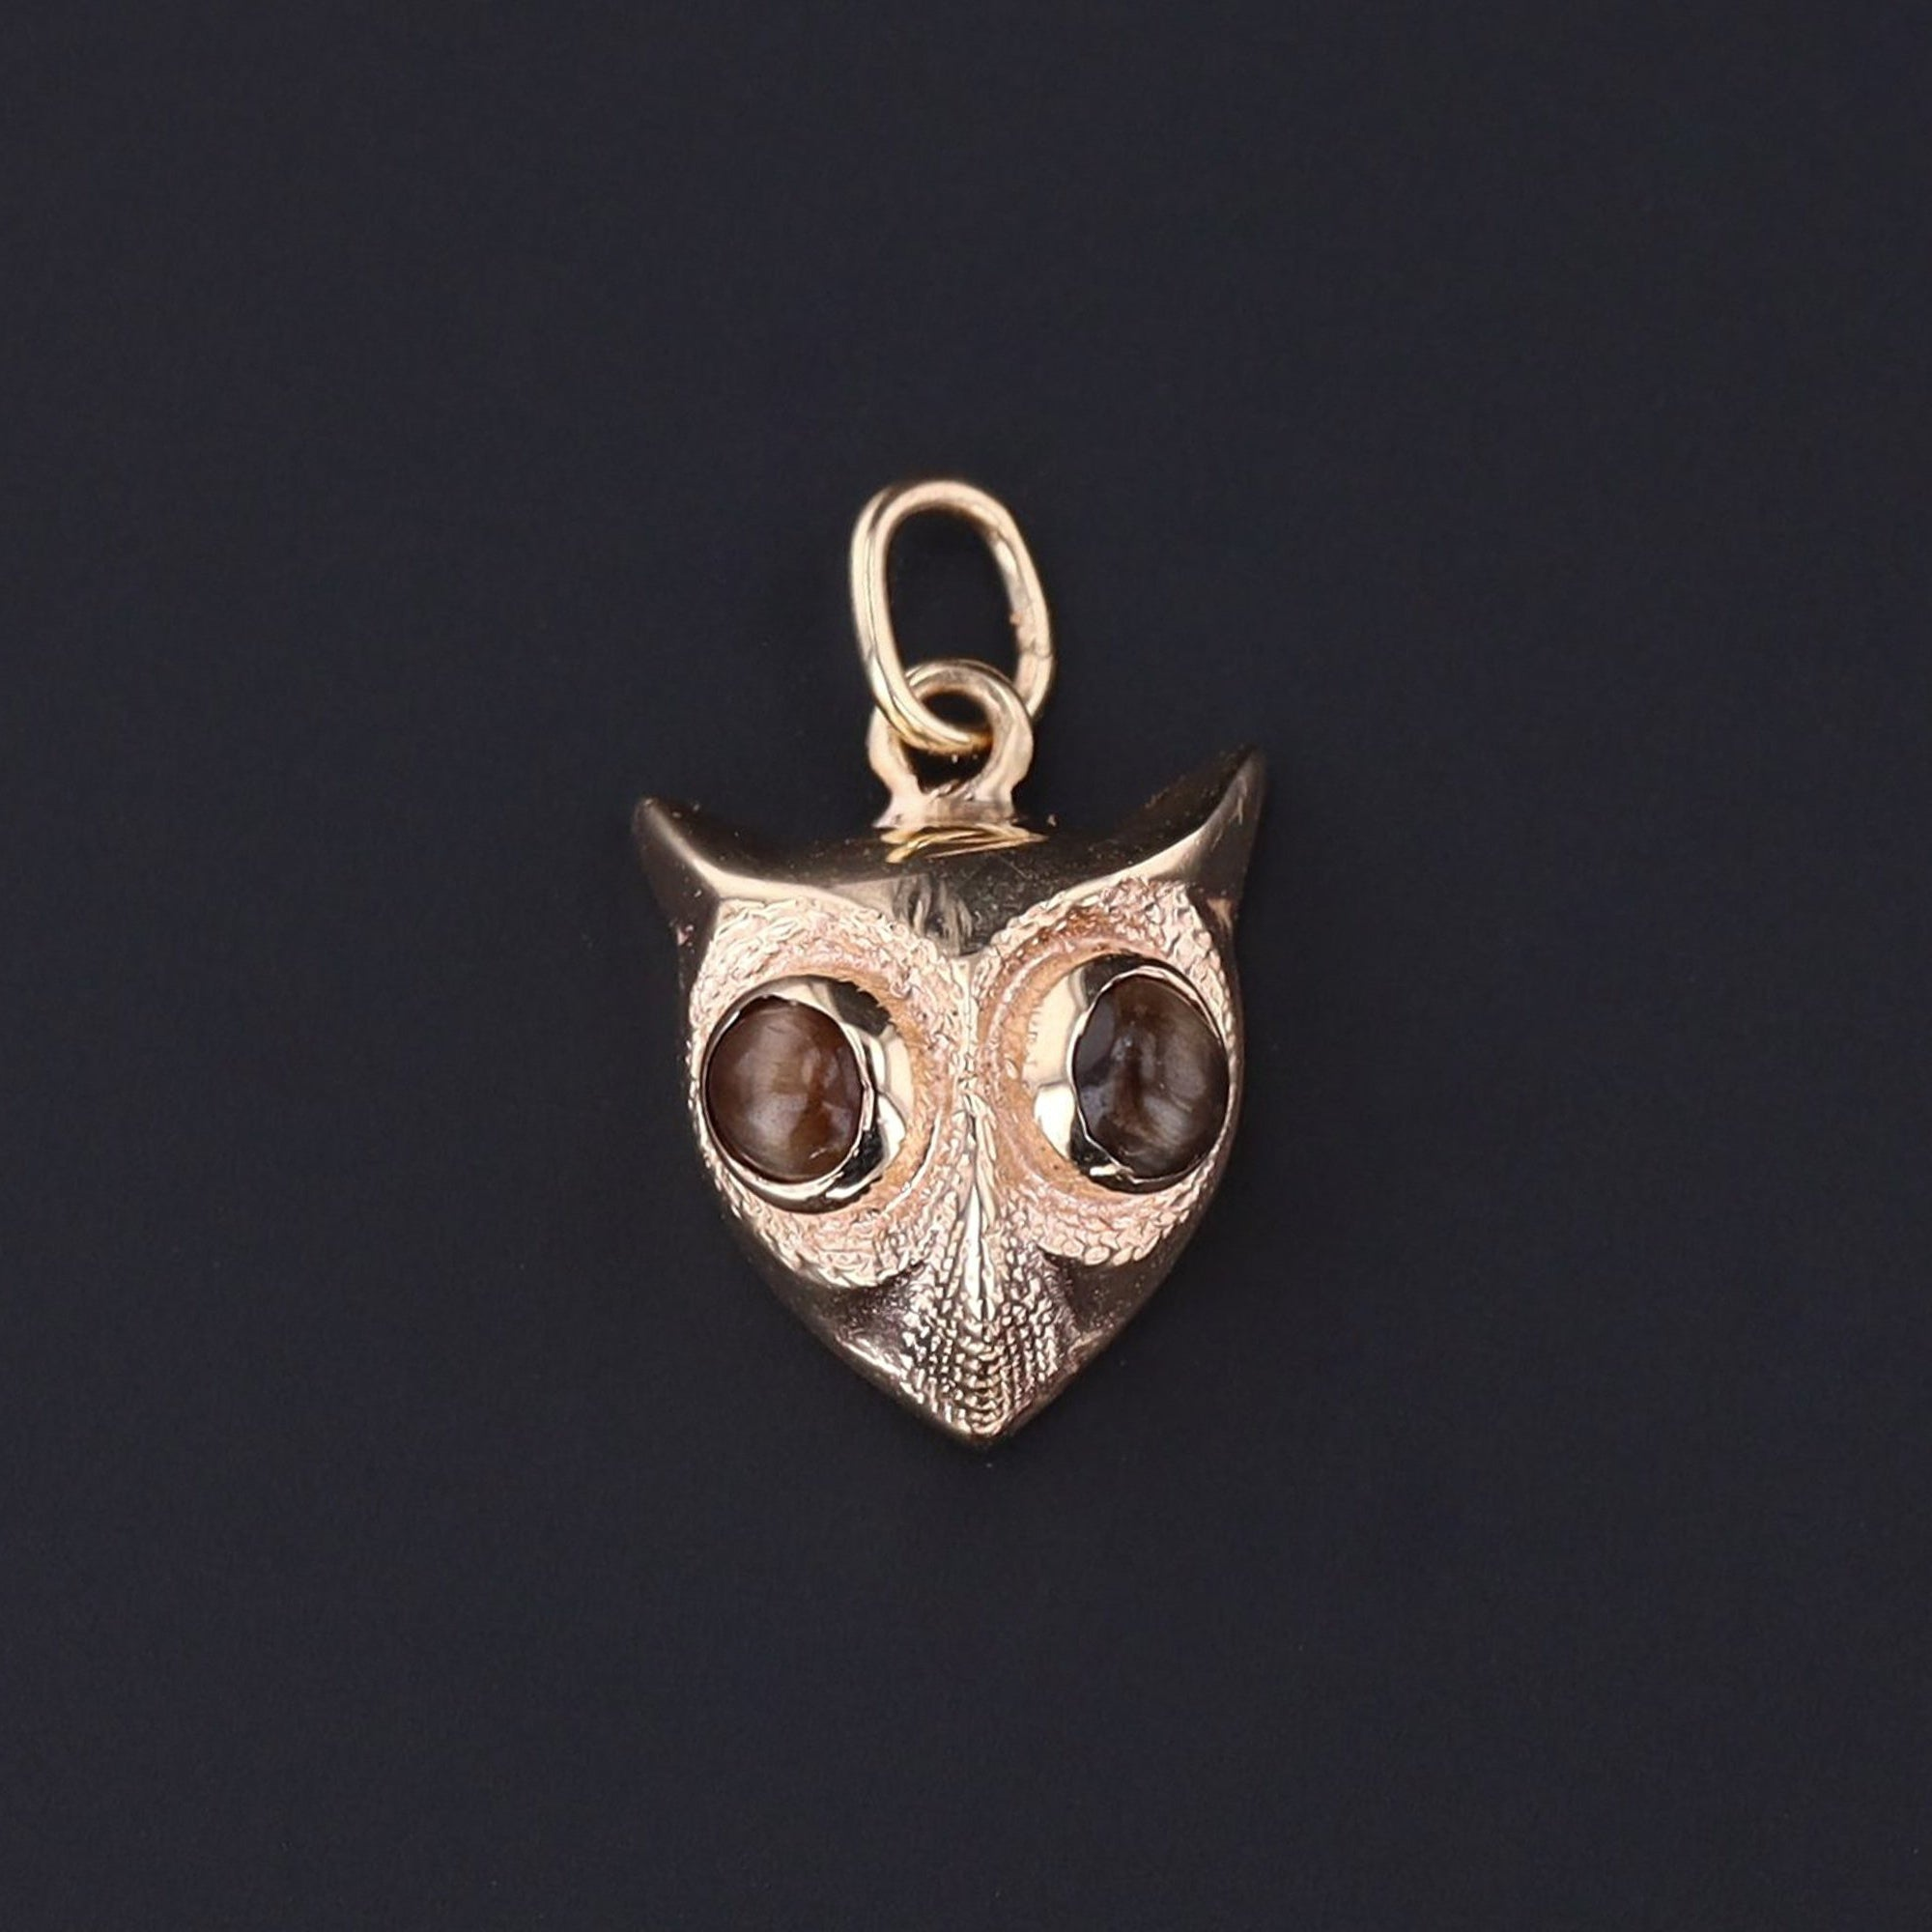 Owl Charm | 14k Gold Owl Charm | Owl with Cats Eye Chrysoberyl | 14k Gold Charm | Antique Pin Conversion